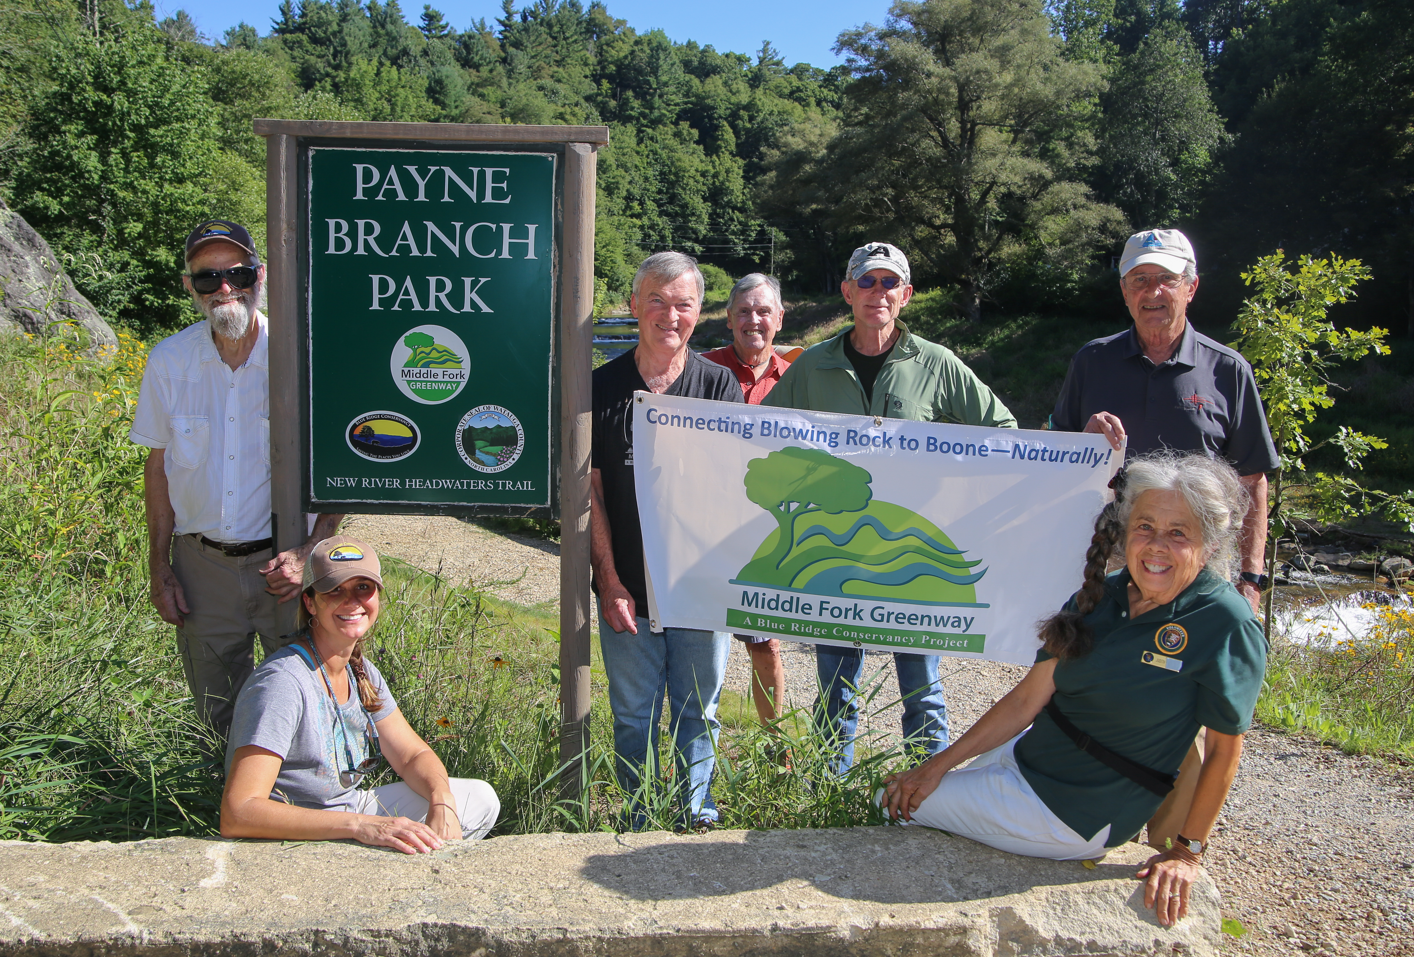 L-R: Middle Fork Greenway task force members Ben Edwards, Wendy Patoprsty, Doug May, Bill Hall, Lance Campbell, Mike Page, Judith Phoenix